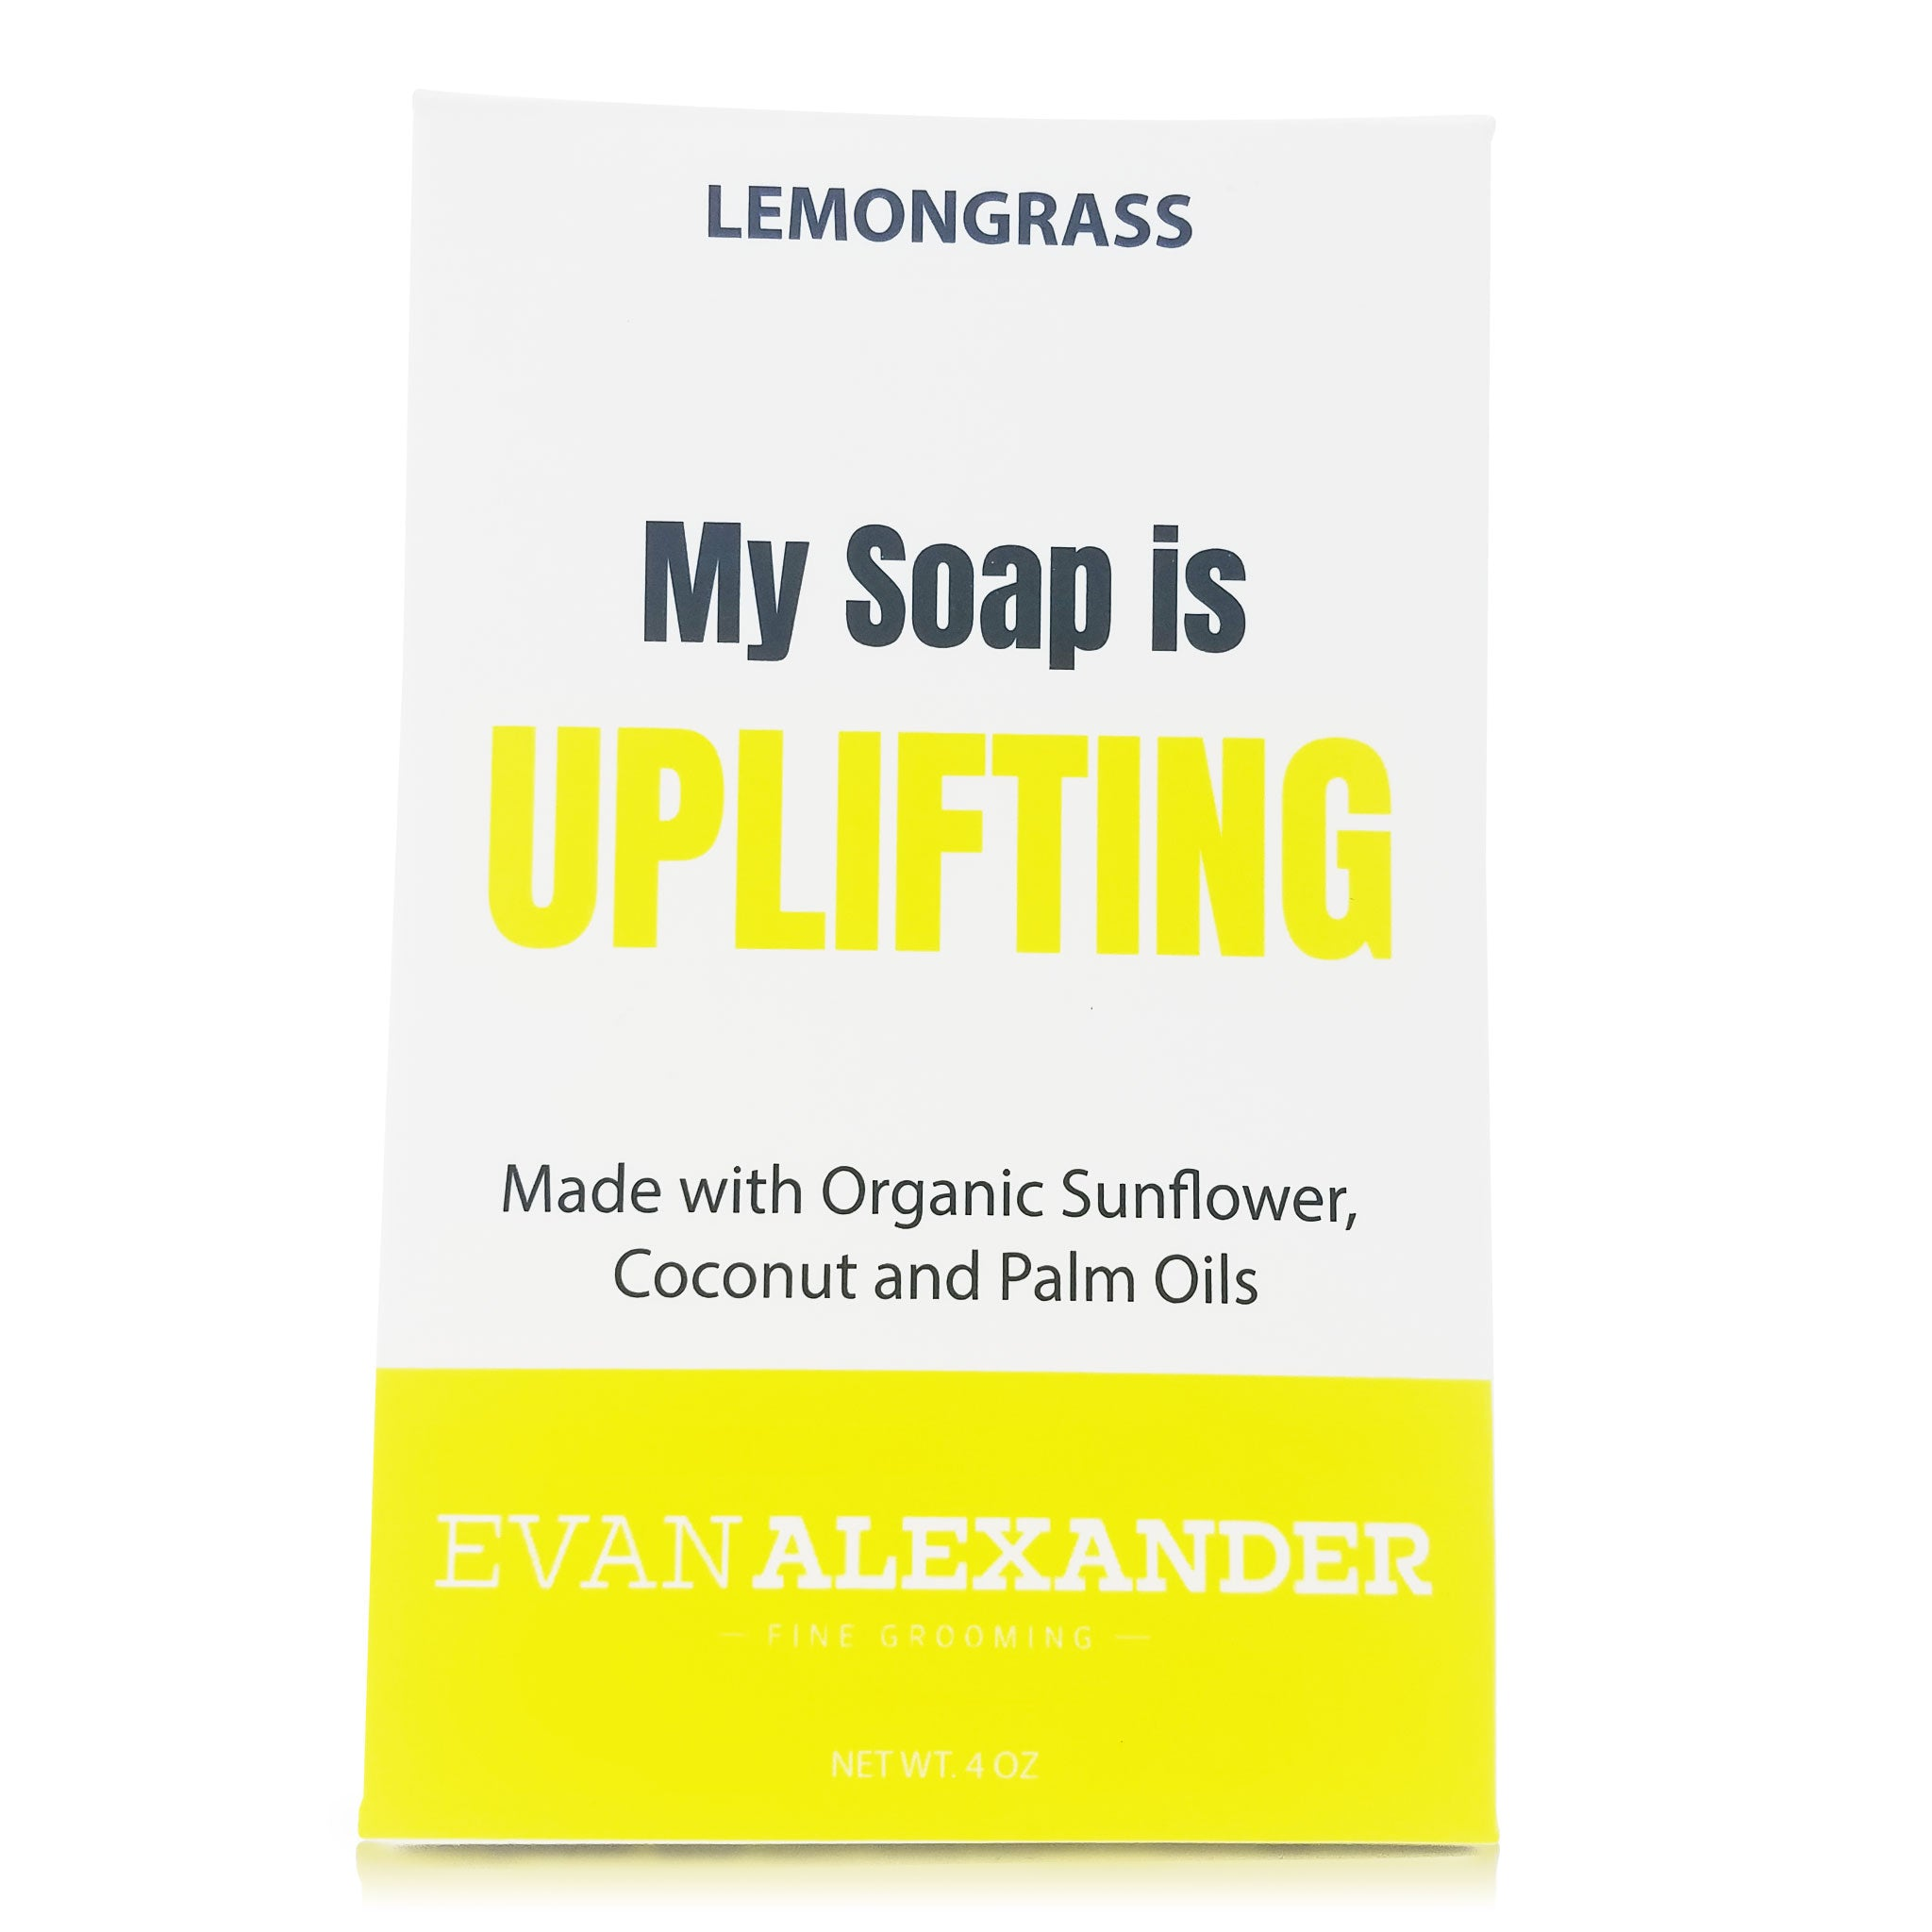 My Soap is Uplifting